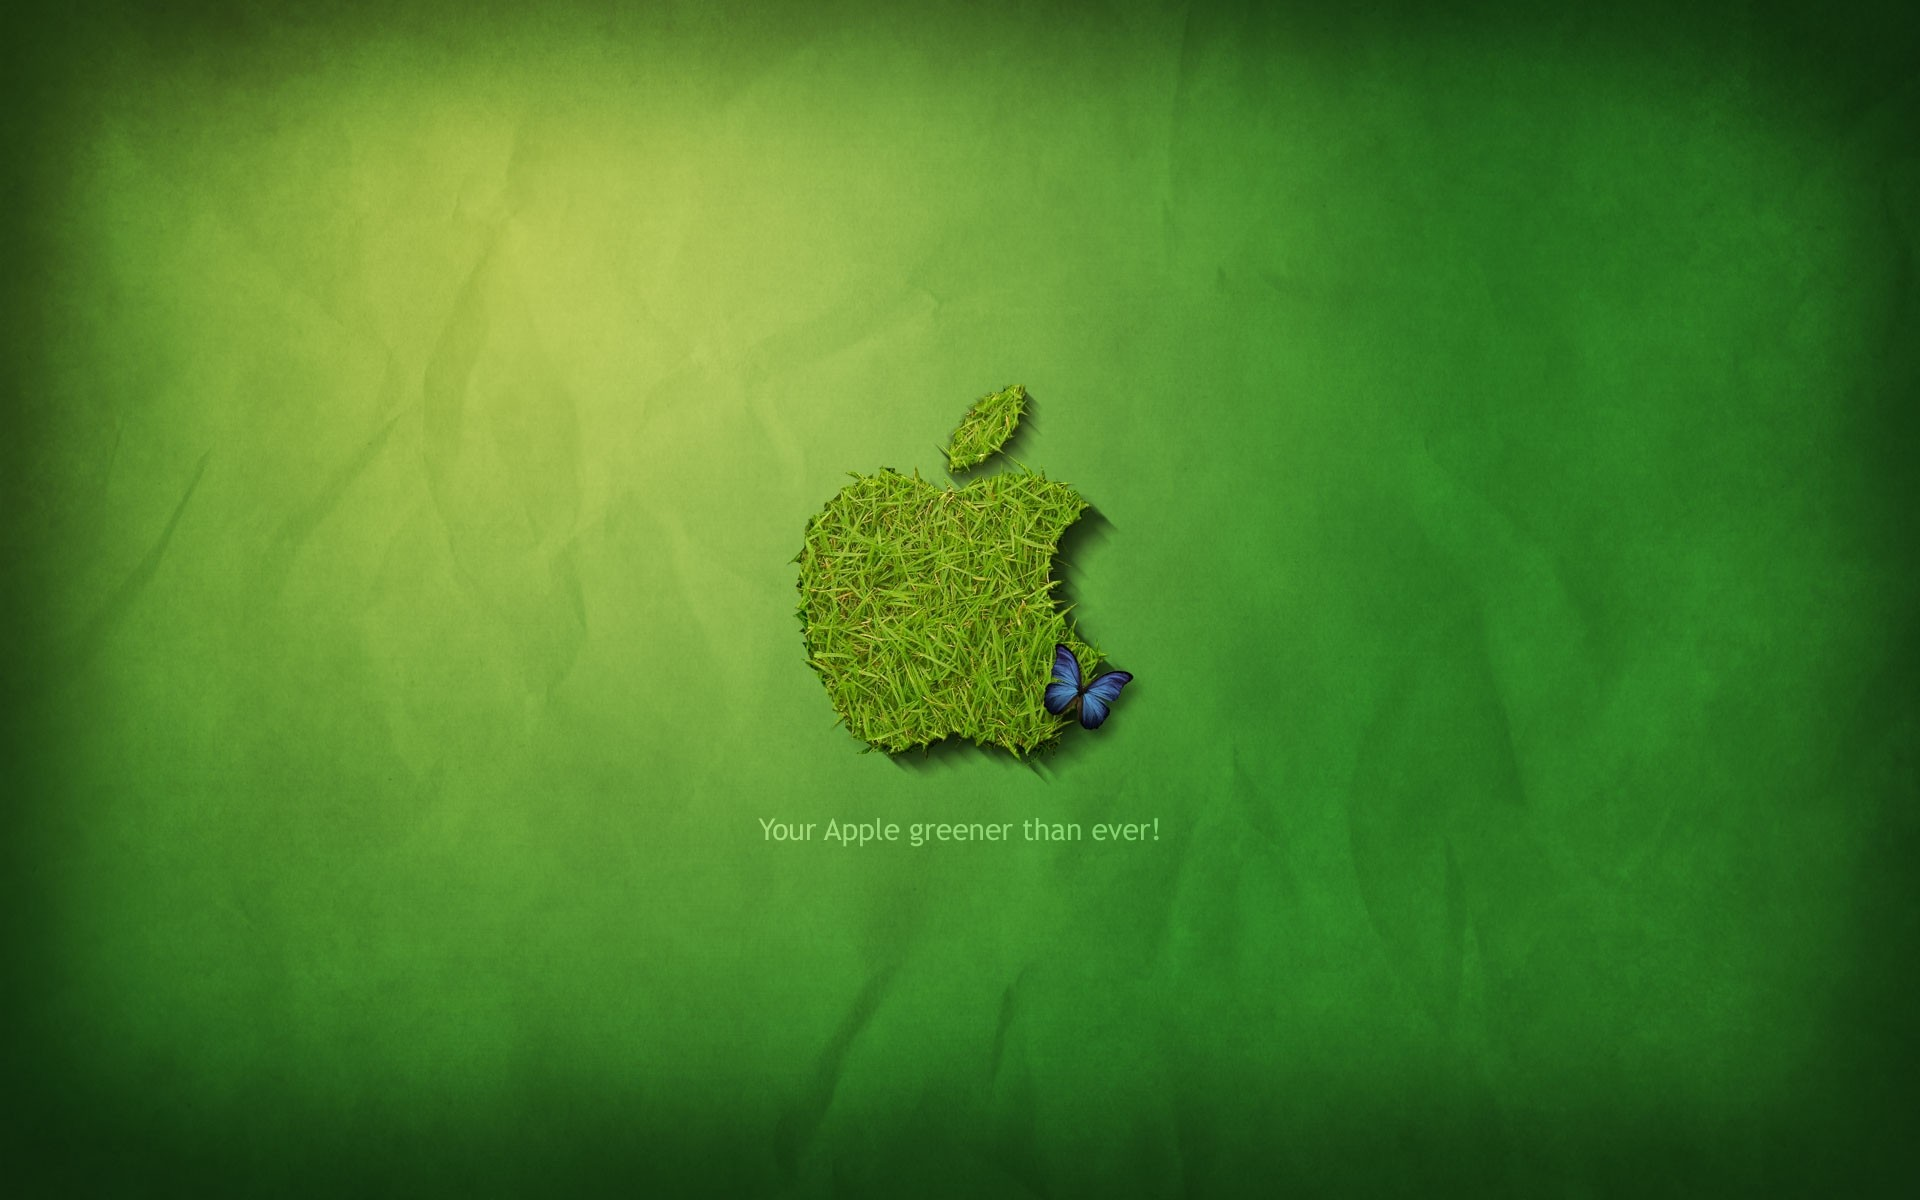 Cool Apple Logo Wallpaper Hd Images amp Pictures   Becuo 1920x1200